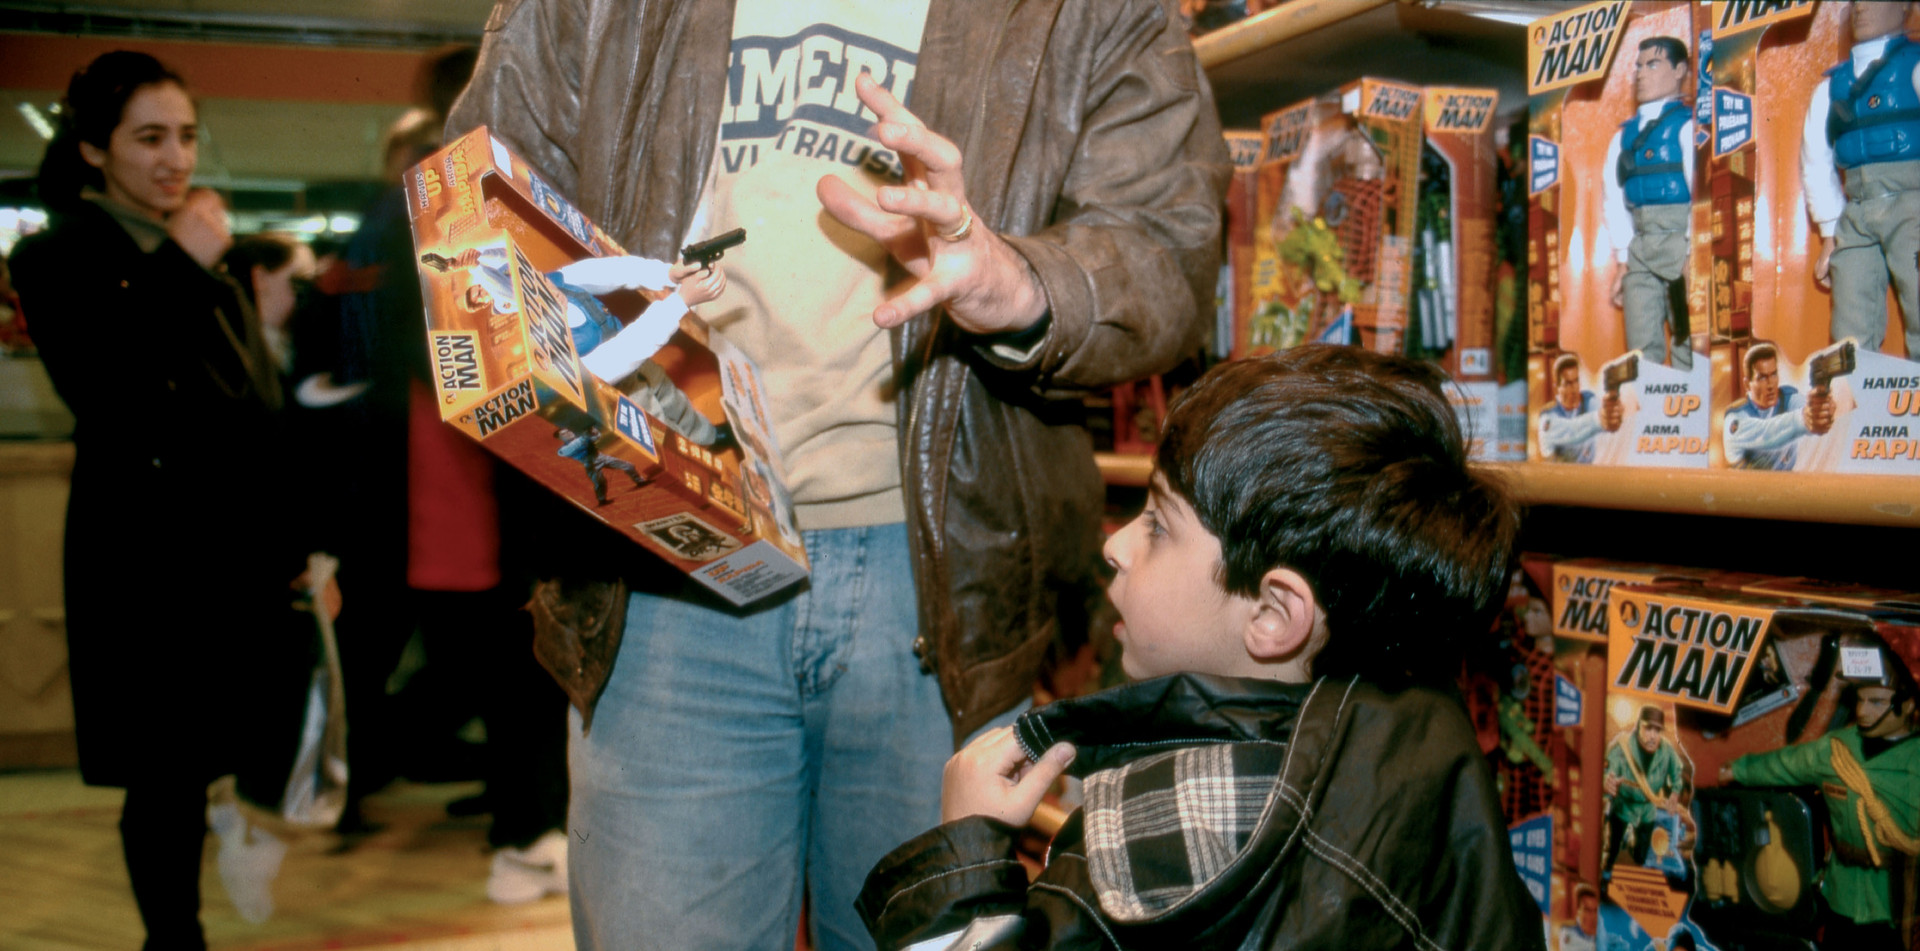 Father convincing son to take an Action Man toy gun